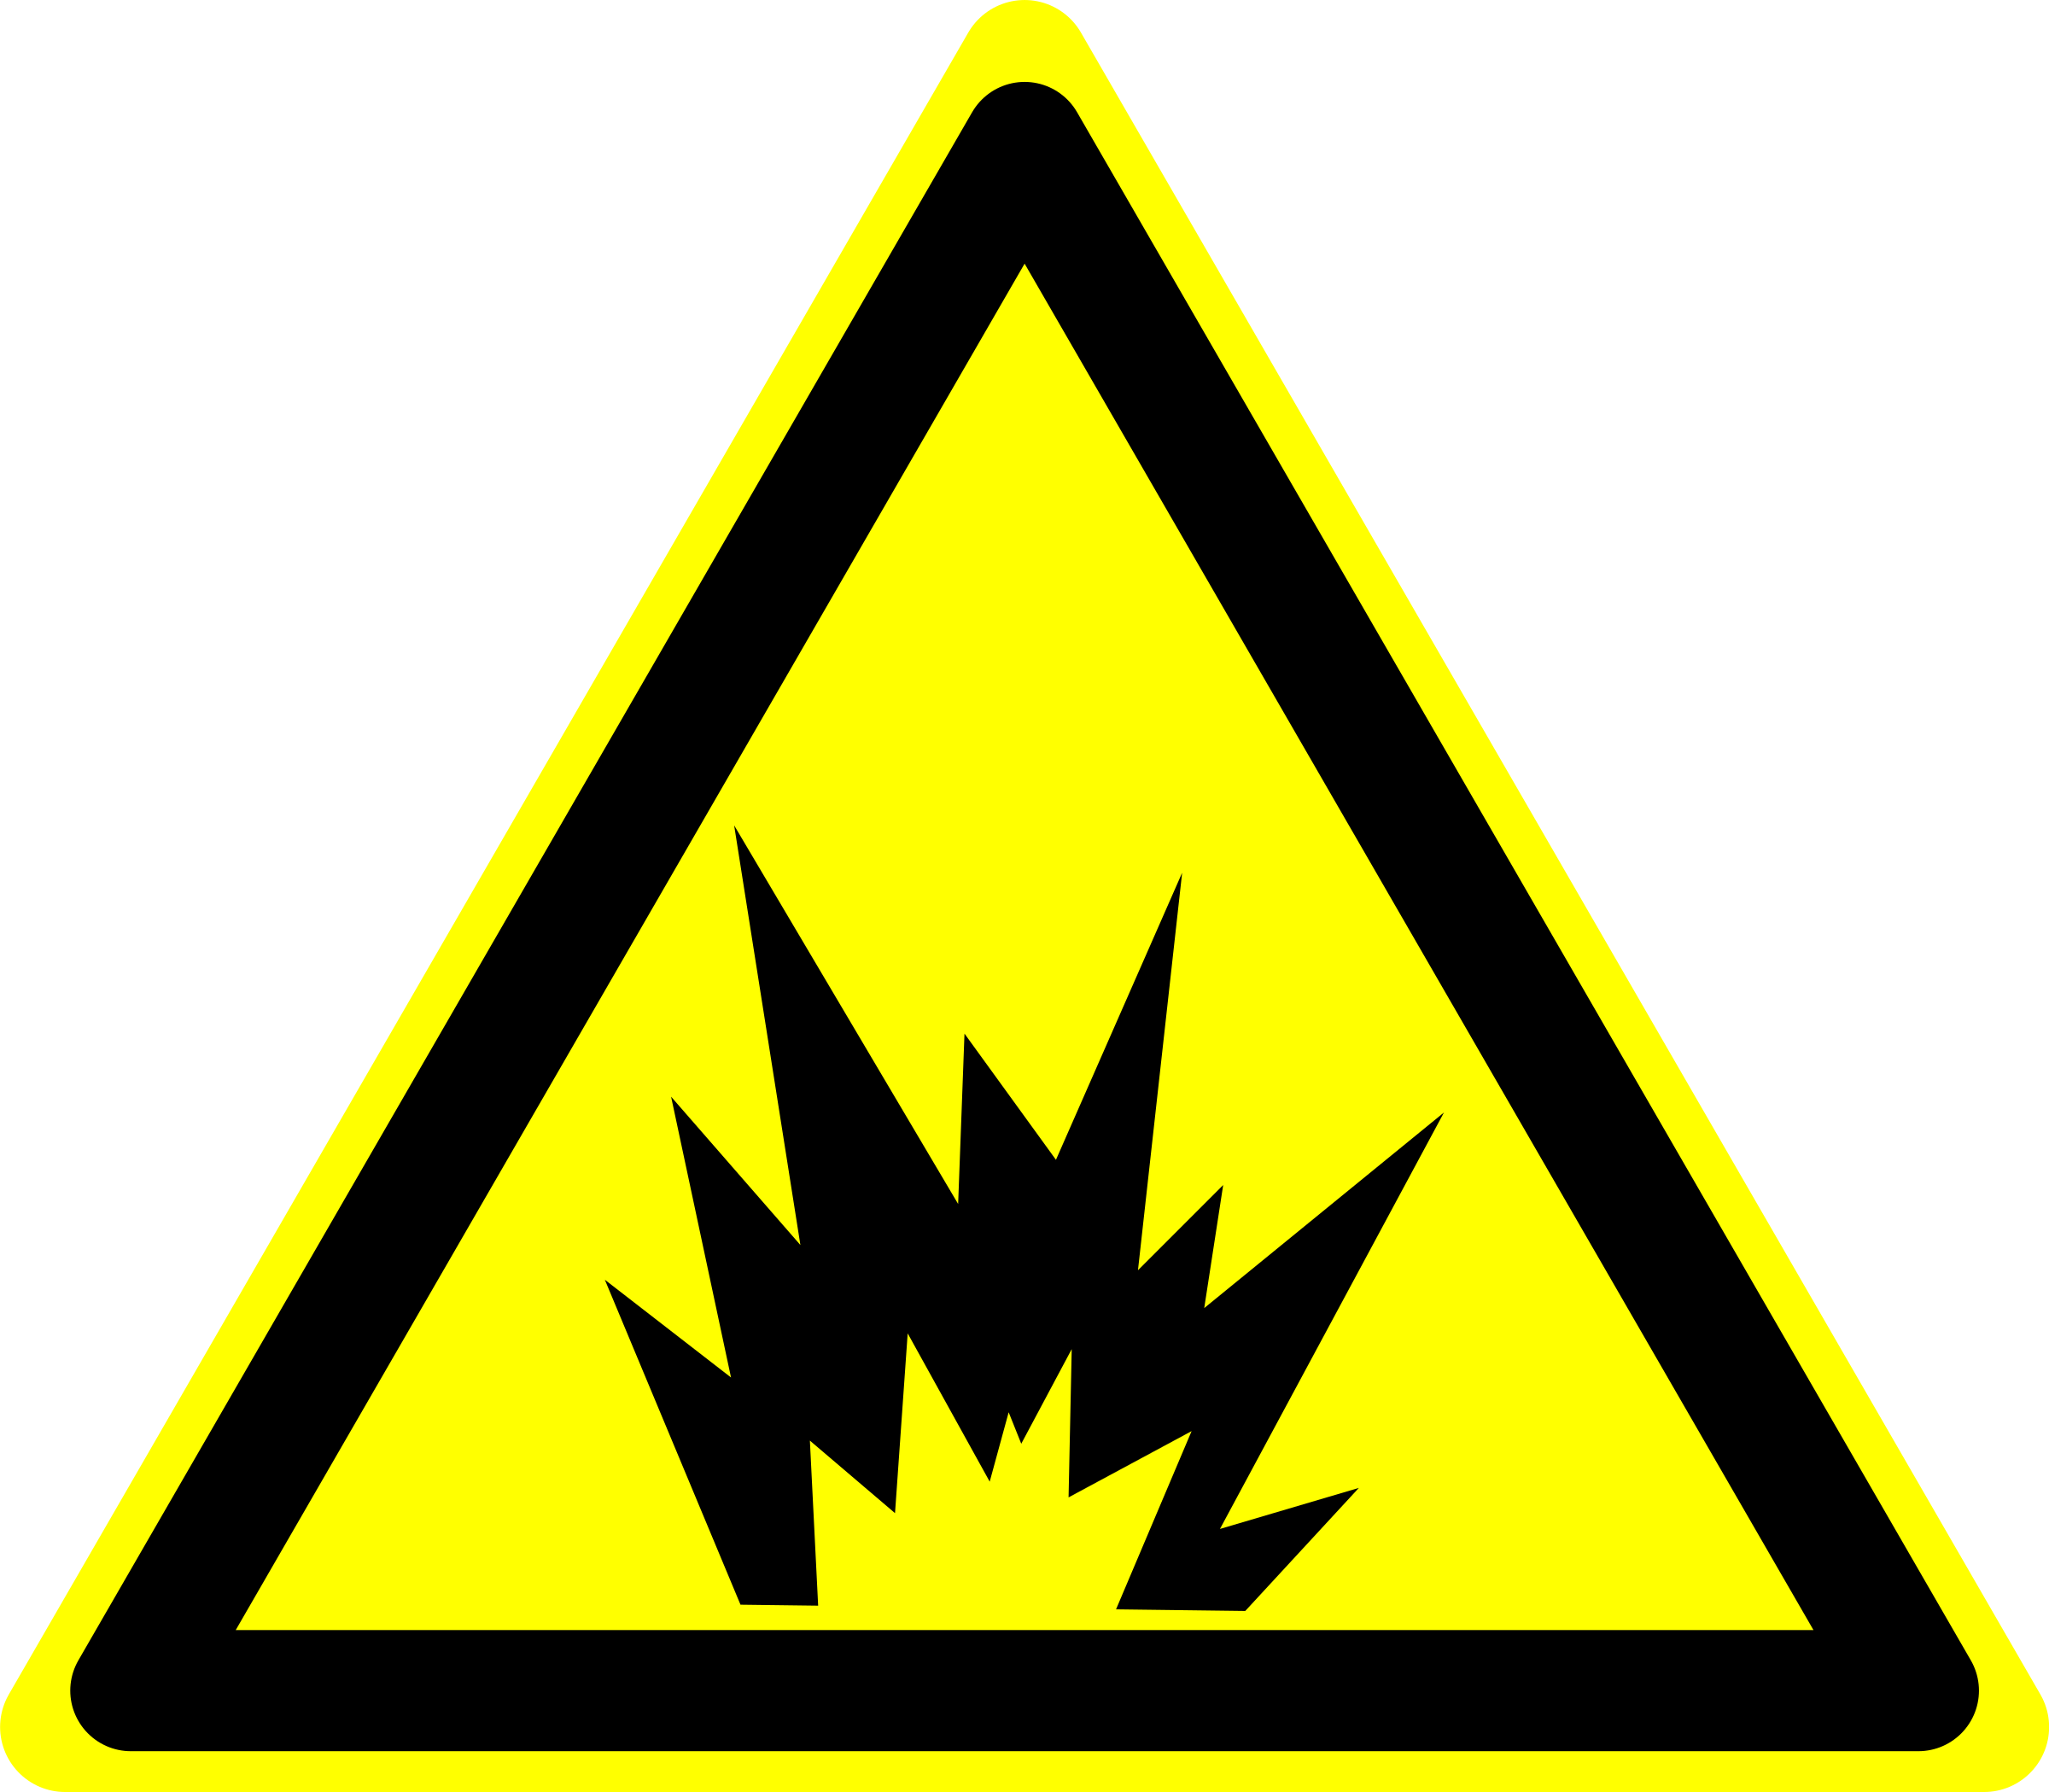 Hazard Warning Sign: Explosion by klaasvangend